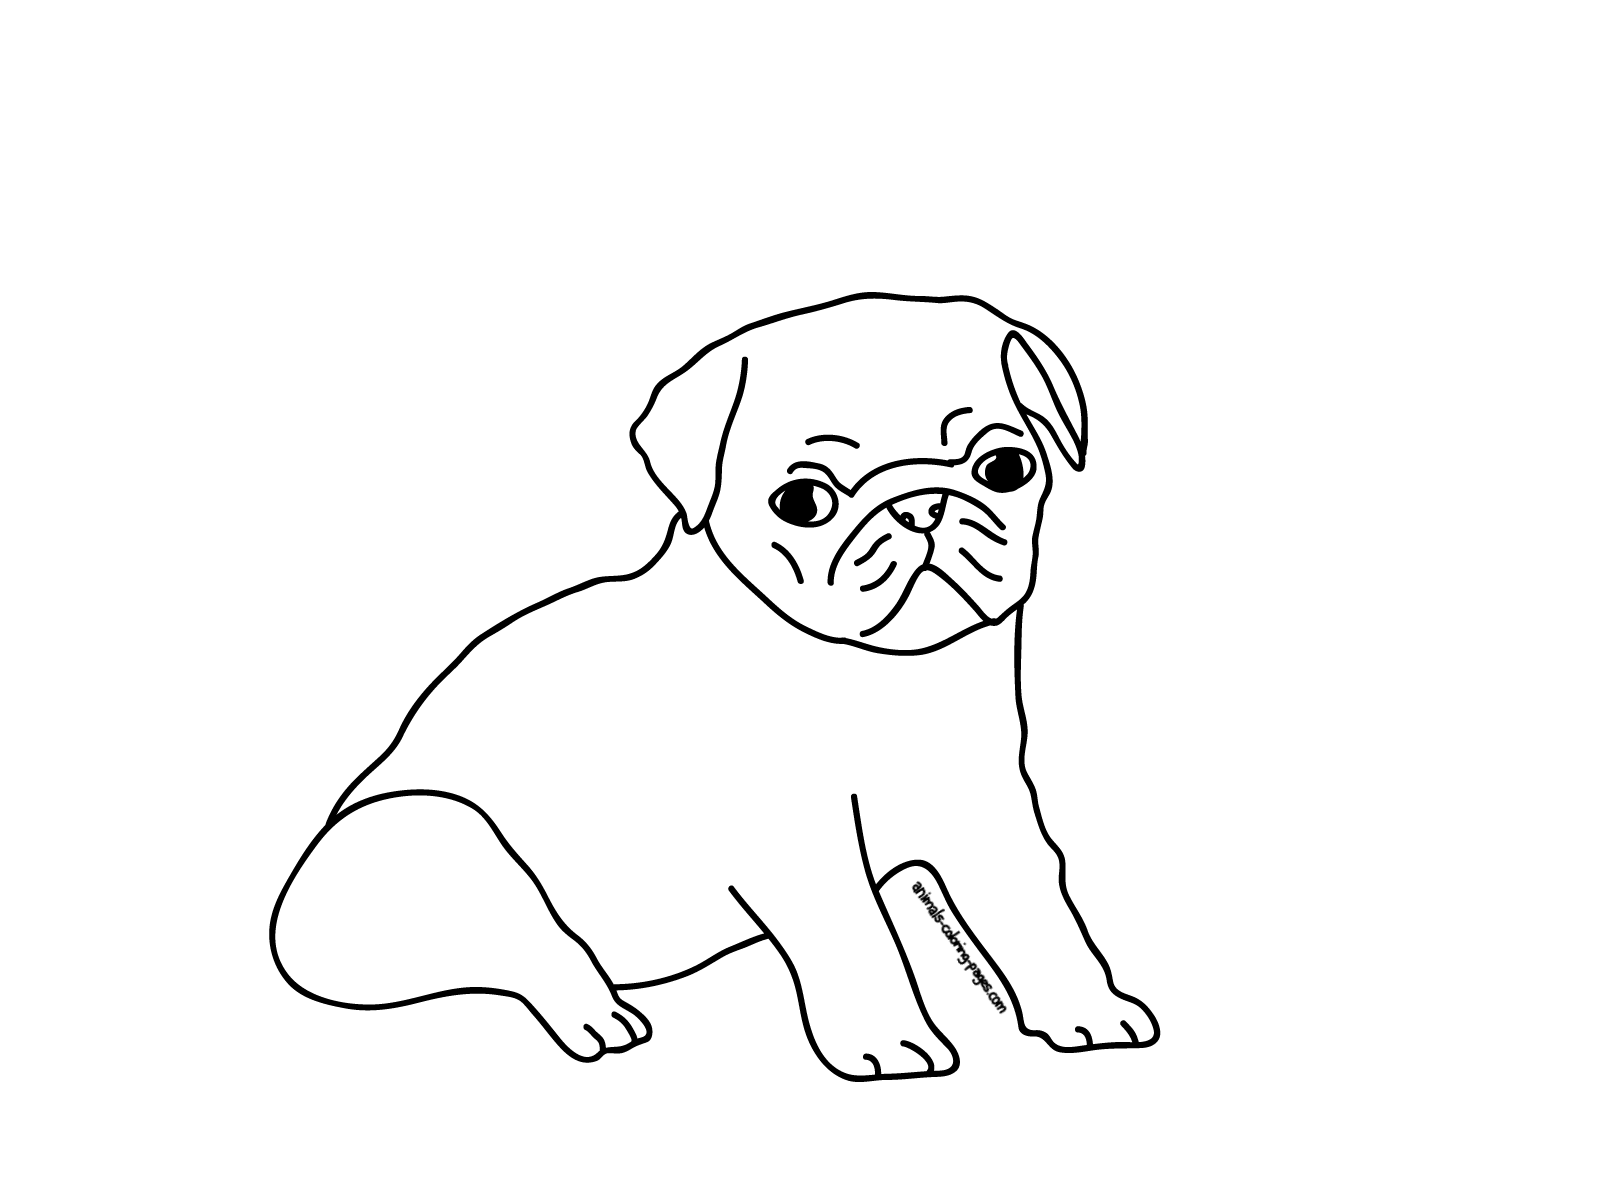 pug puppy coloring pages printable pug coloring pages coloring home pug puppy coloring pages